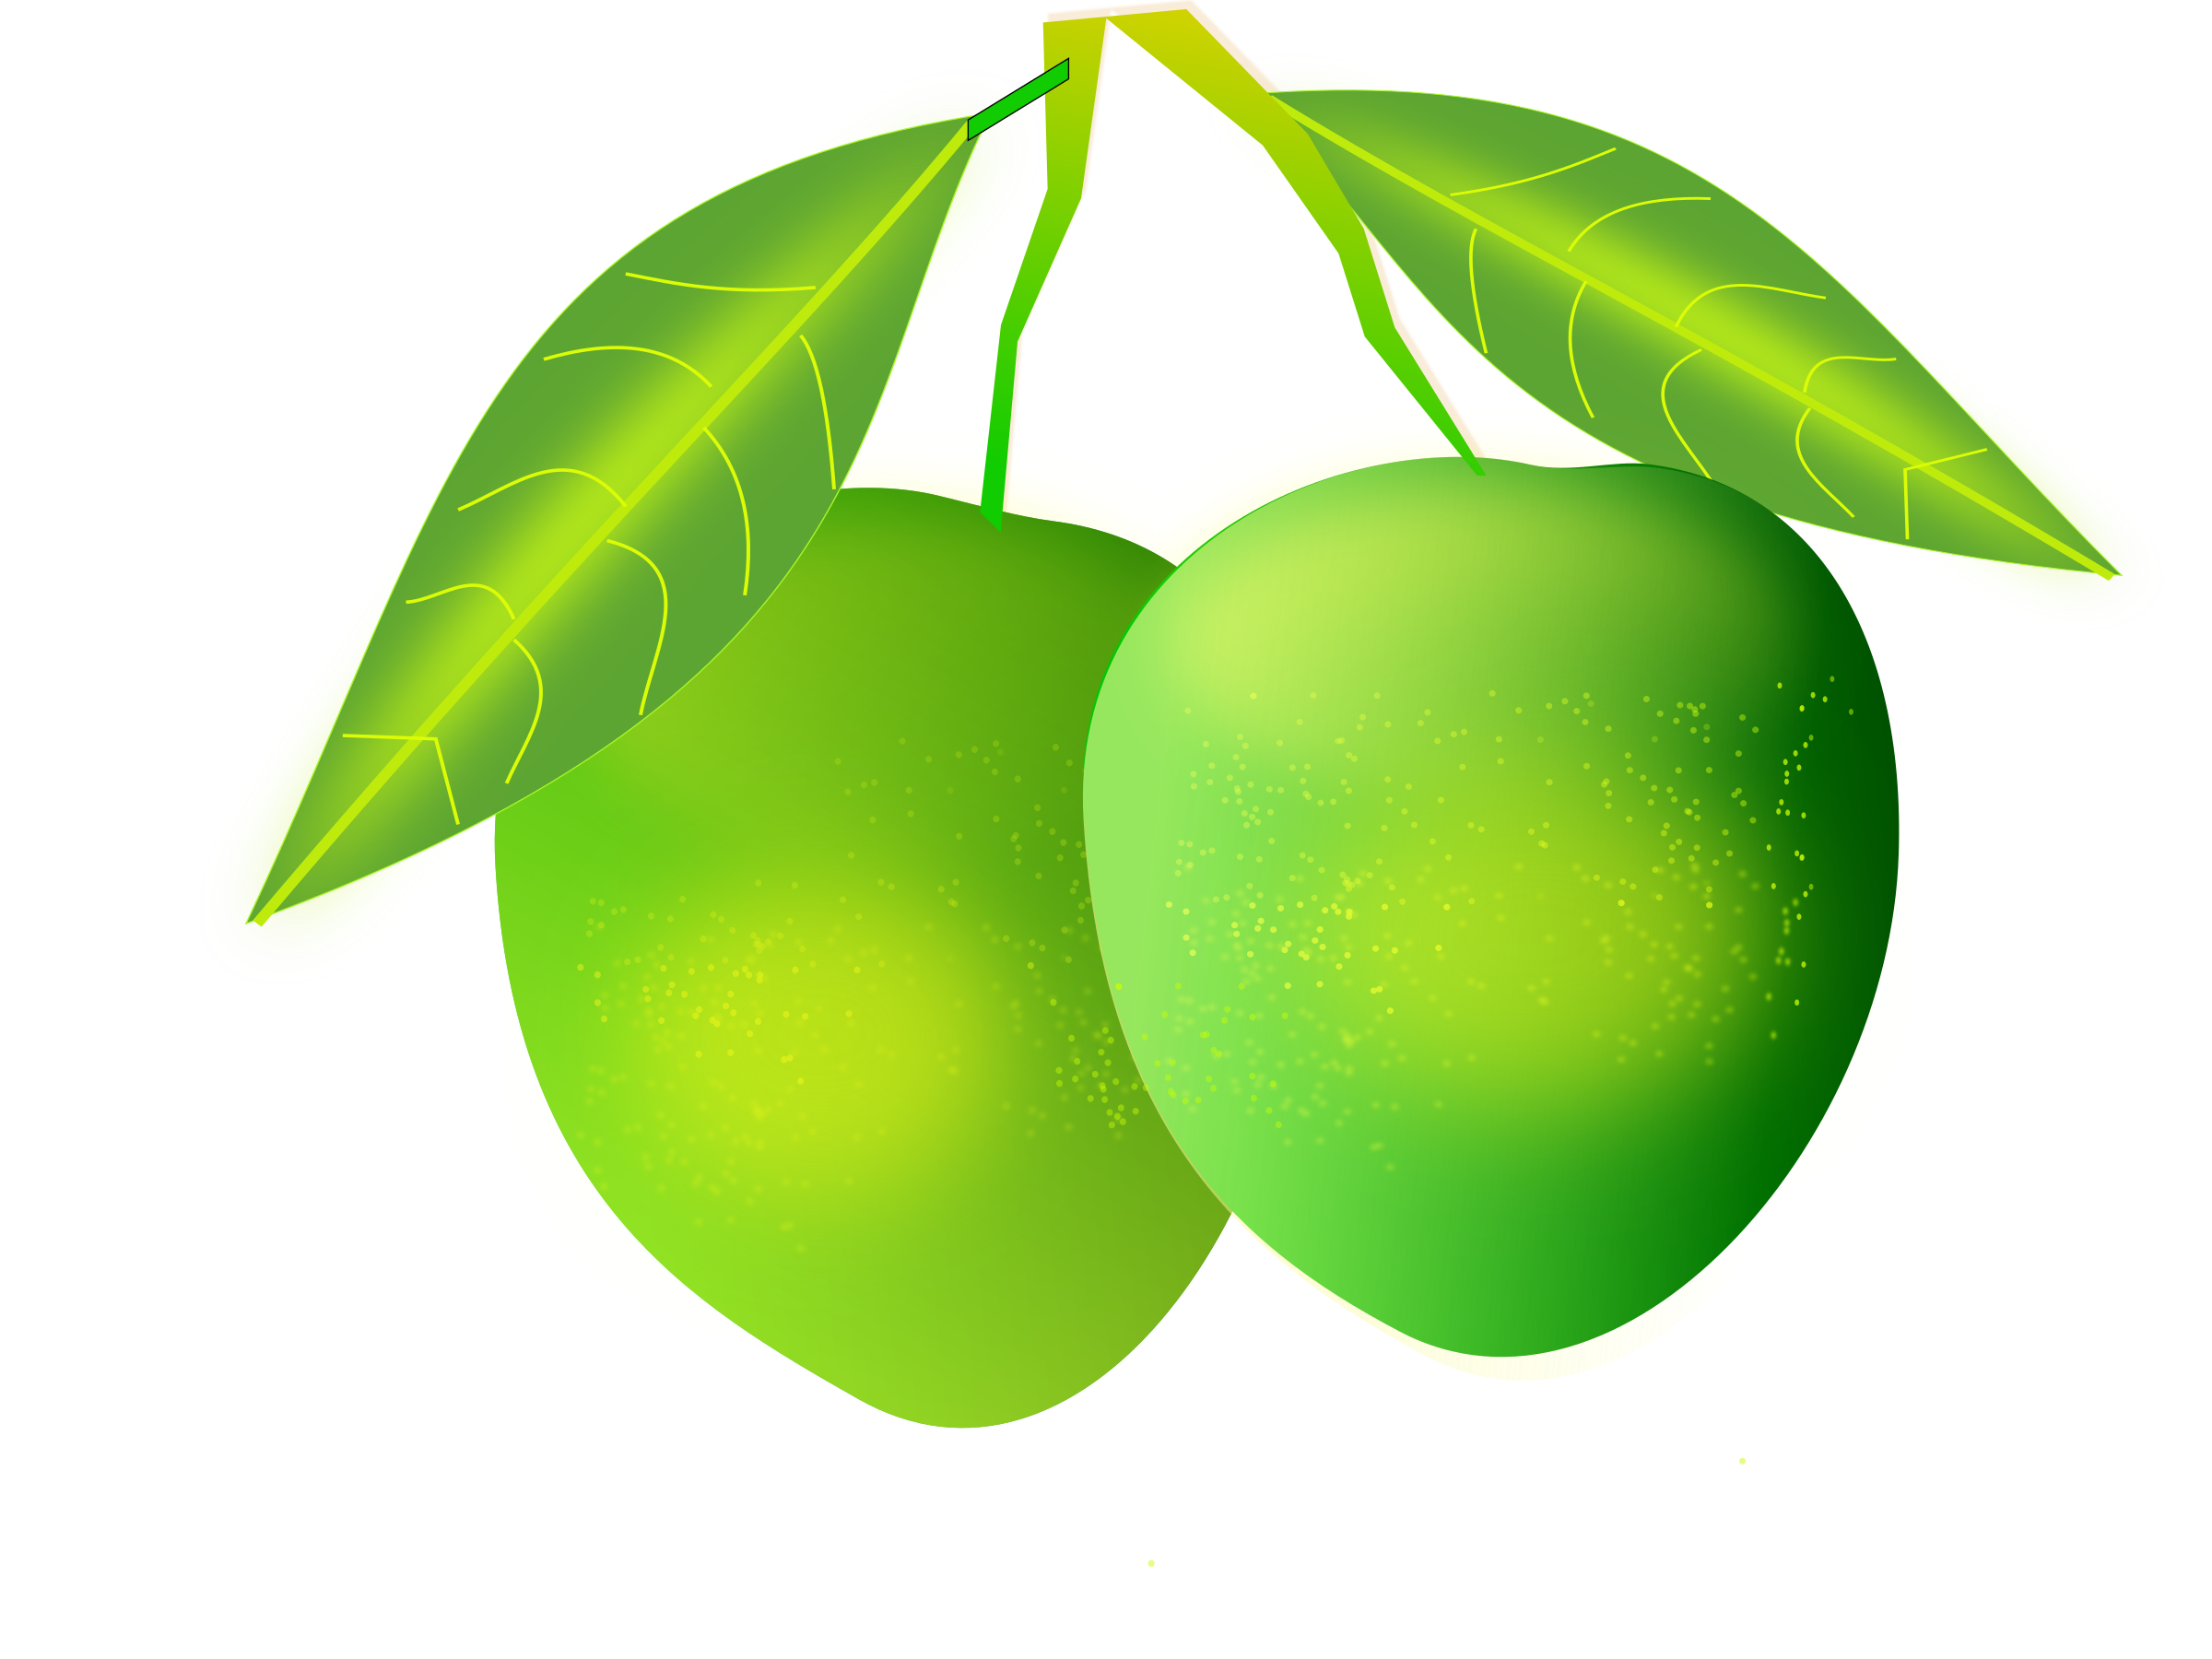 Clipart leaves mango tree. Big image png